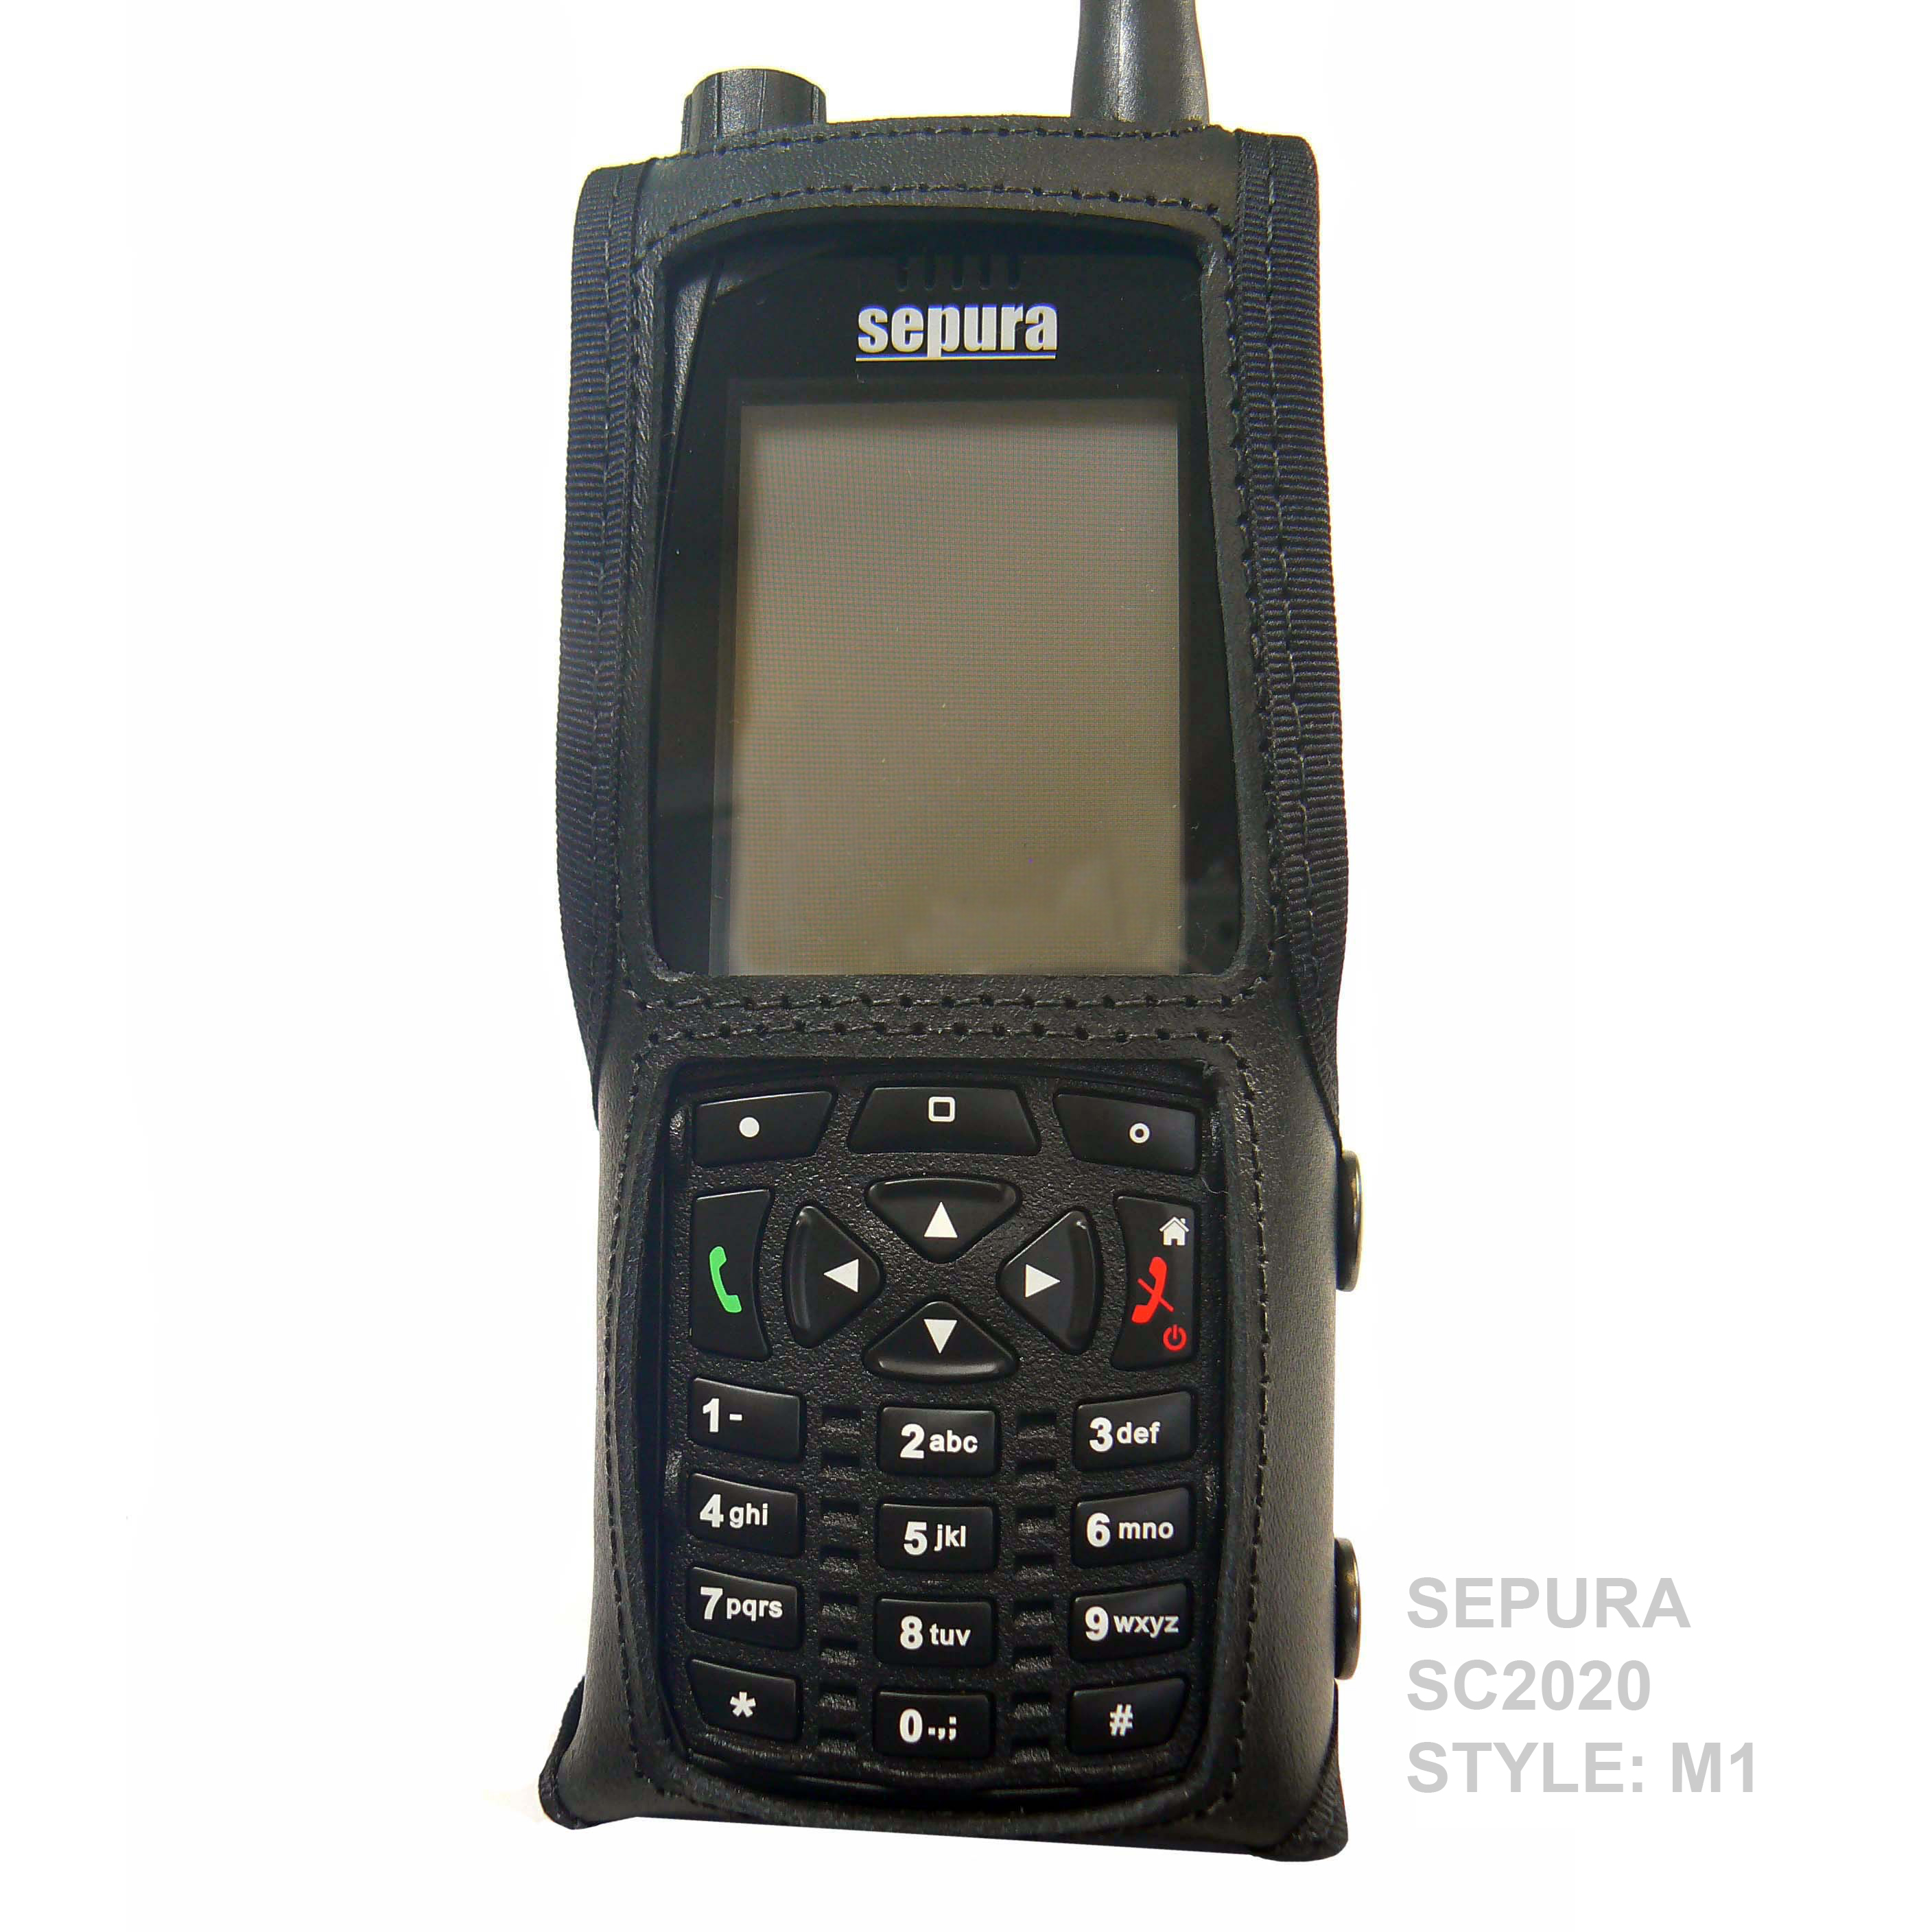 Sepura SC2020 Tetra leather radio case with Click-On